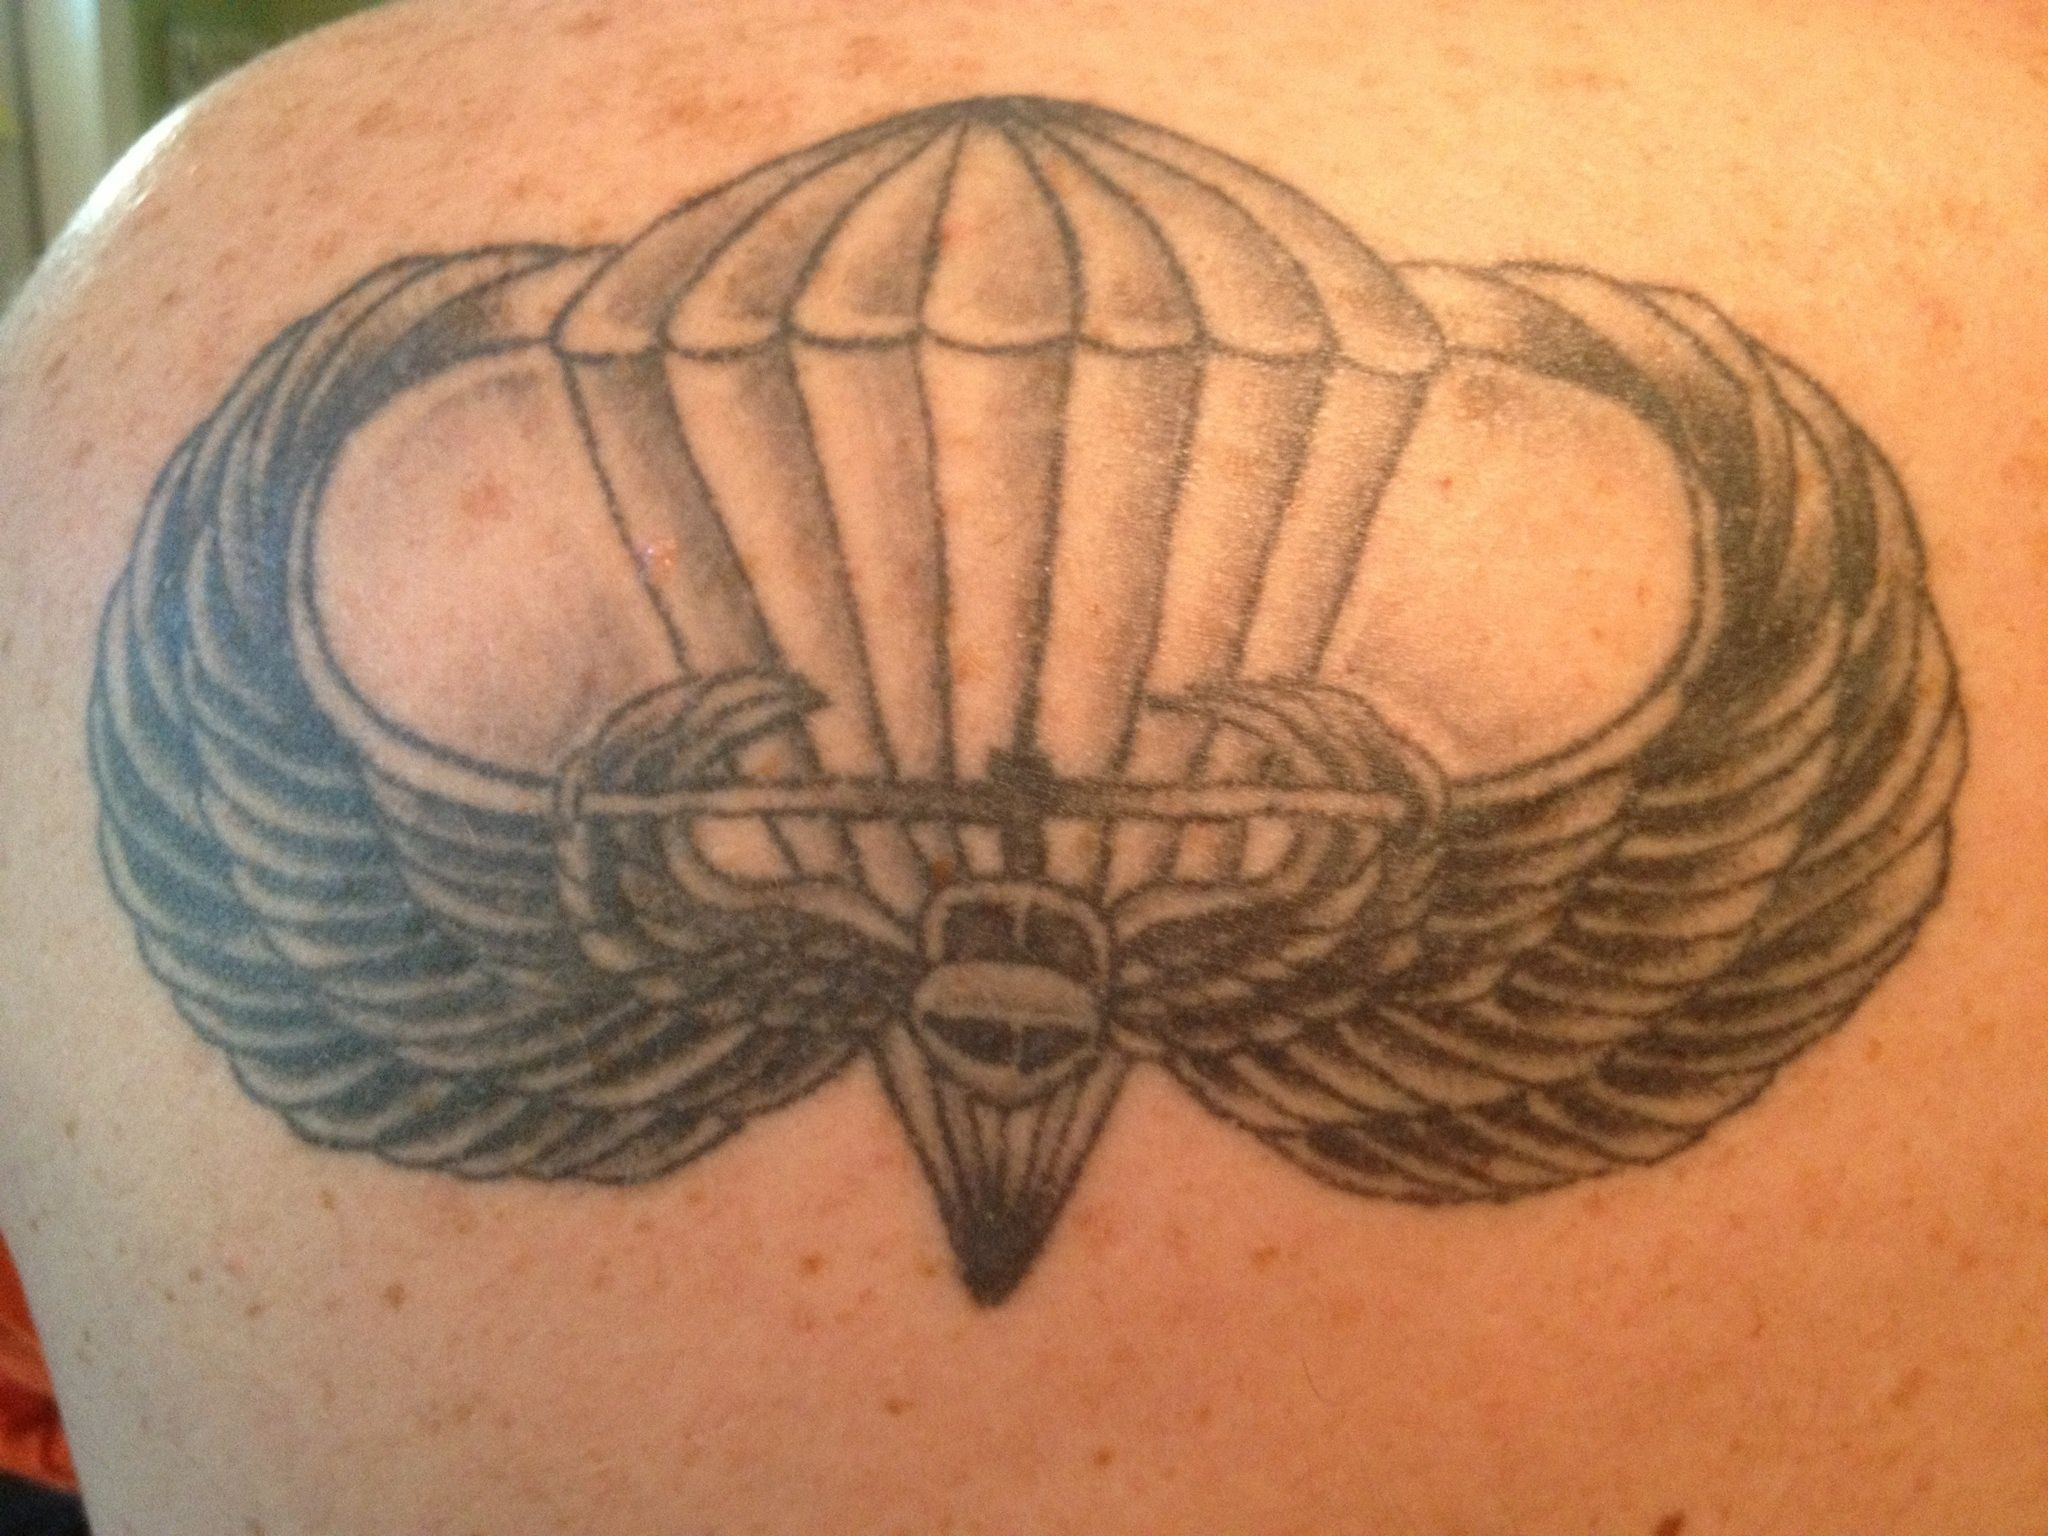 Airborne Air Assault Tattoo Ideas And Ink Tattoos Ideas And Designs